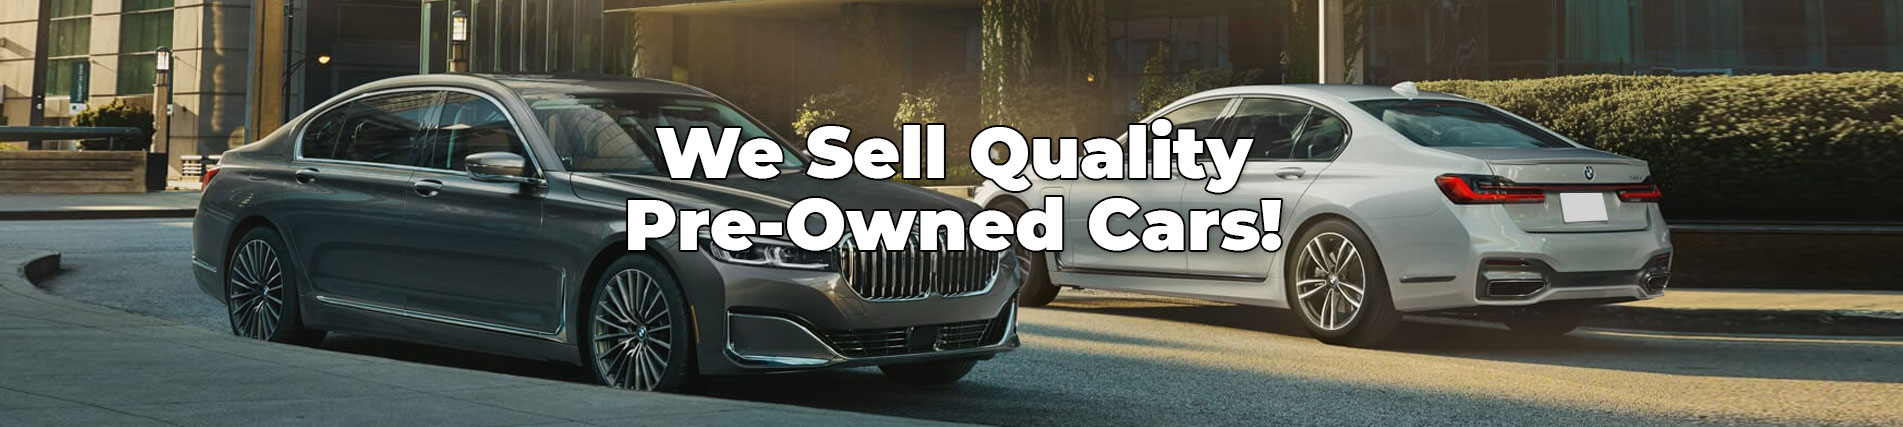 We sell quality pre-owned cars